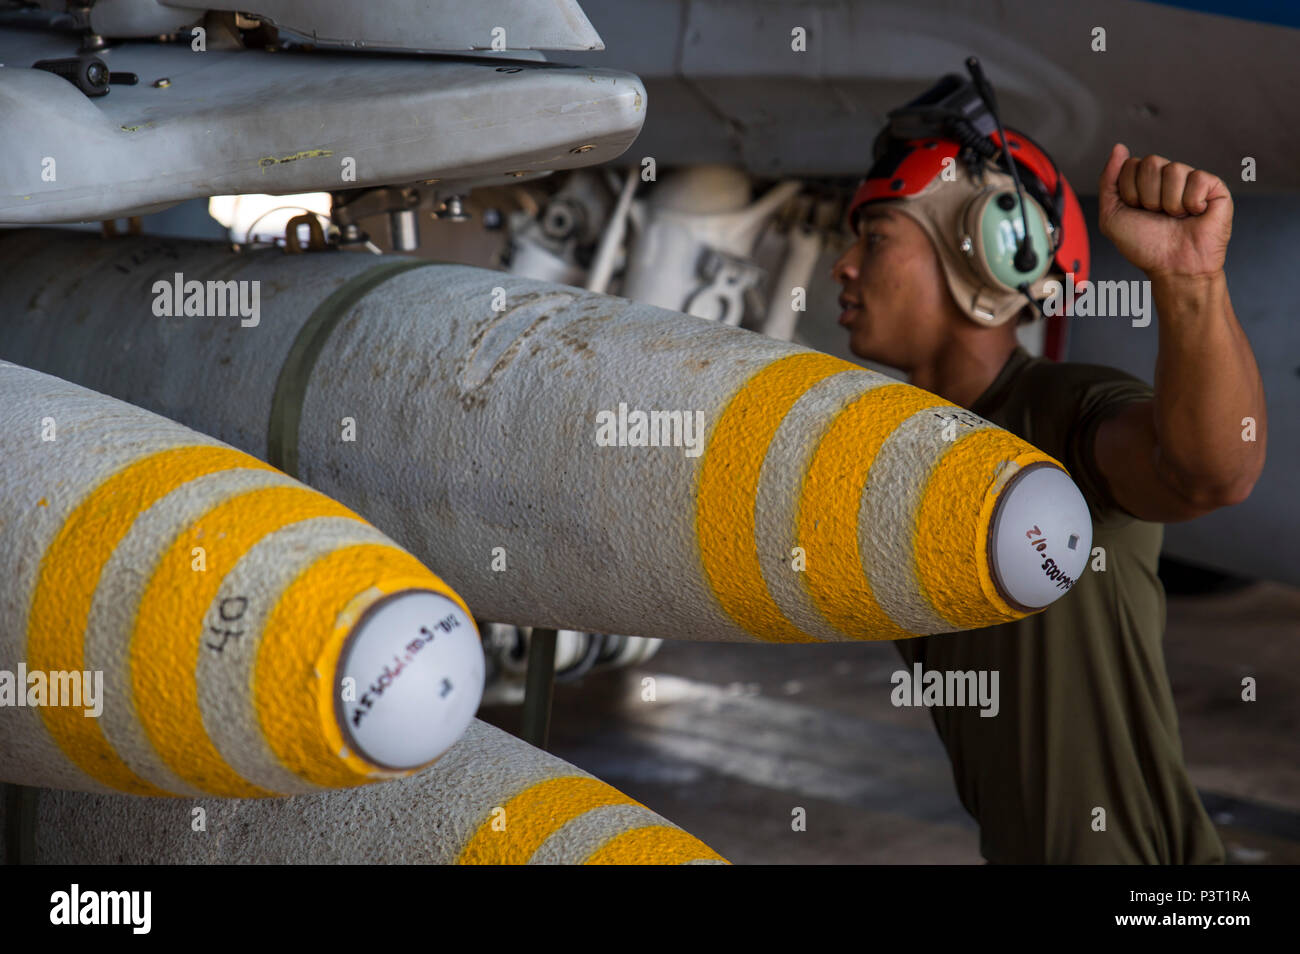 Cpl. Javon Franklin, an aviation ordnance technician with Marine Fighter Attack Squadron (VMFA) 122, assists in loading high explosive ordnance on an F/A-18C Hornet during exercise Southern Frontier at Royal Australian Air Force Base Tindal, Australia, July 28, 2016. Southern Frontier is three weeks of unit level training helping the squadron gain experience and qualifications in low altitude, air-ground, high explosive ordnance delivery at the unit level. VMFA-122 is home based out of Marine Corps Air Station Beaufort, South Carolina and are currently assigned to MAG-12 at MCAS Iwakuni under  - Stock Image